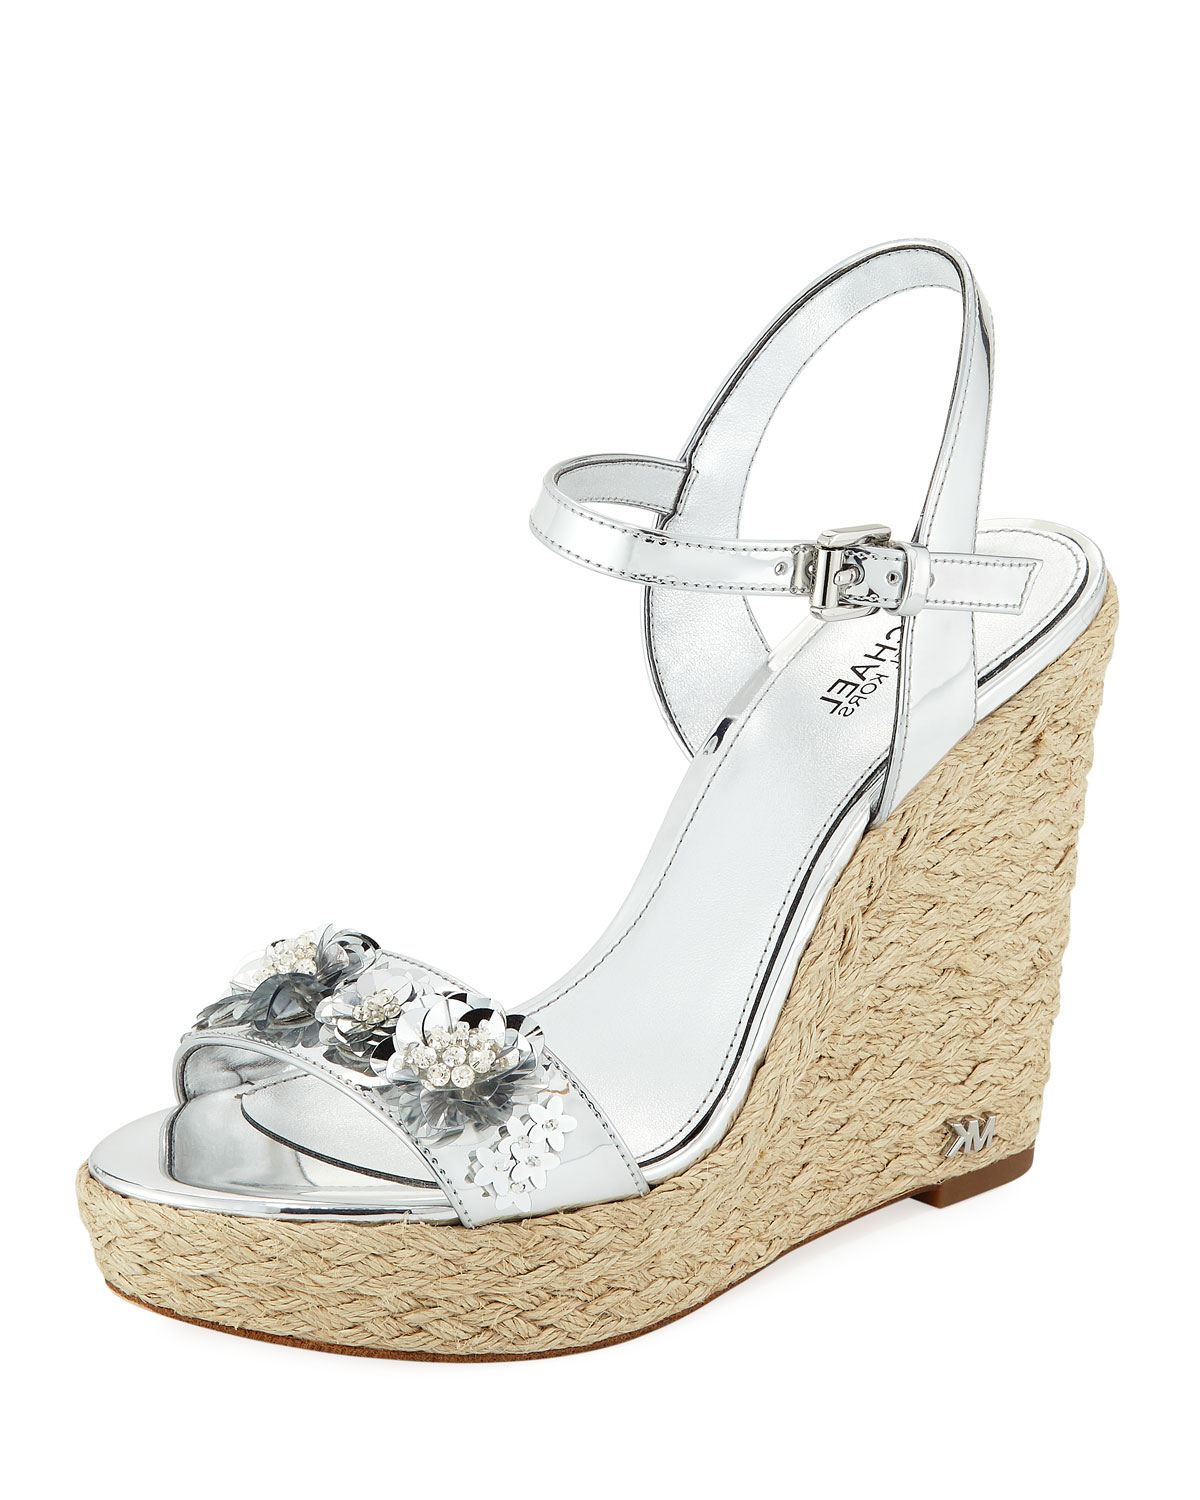 38b50569ba3 MICHAEL Michael KorsJill Metallic Leather Espadrille Wedge Sandal with  Sequined Flower